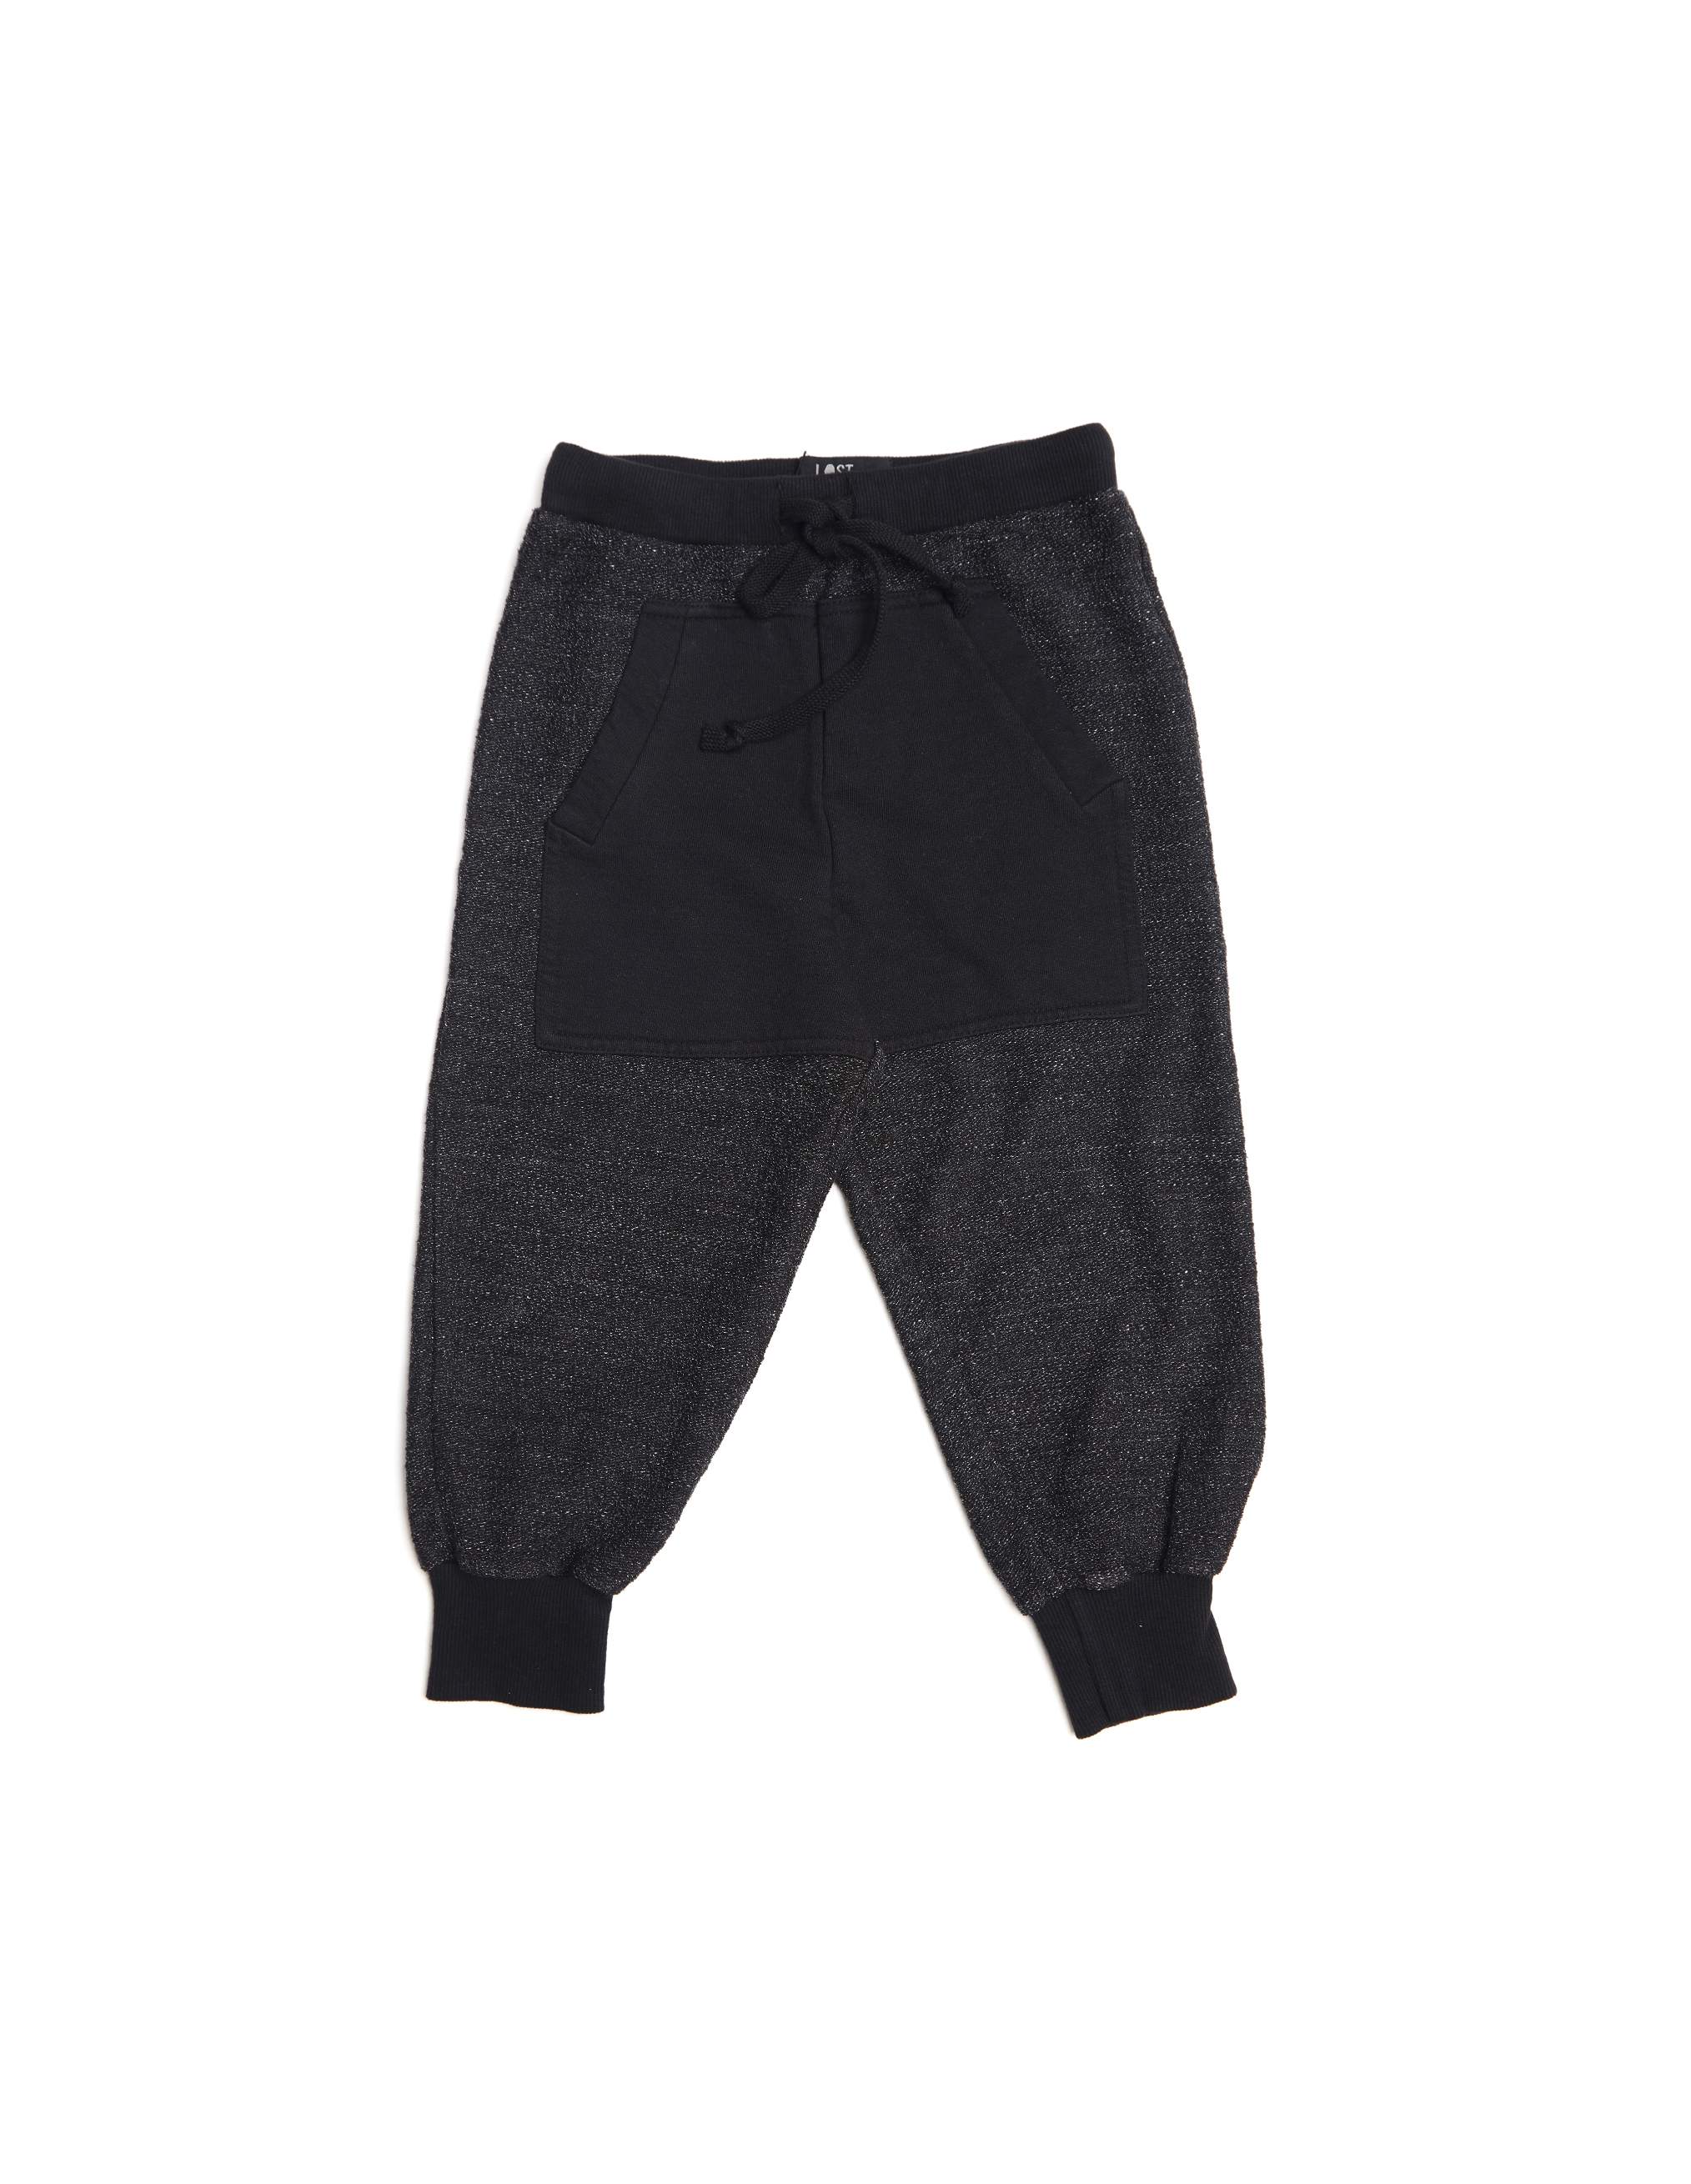 Lost&Found kids Cotton Sweatpants with Pocket